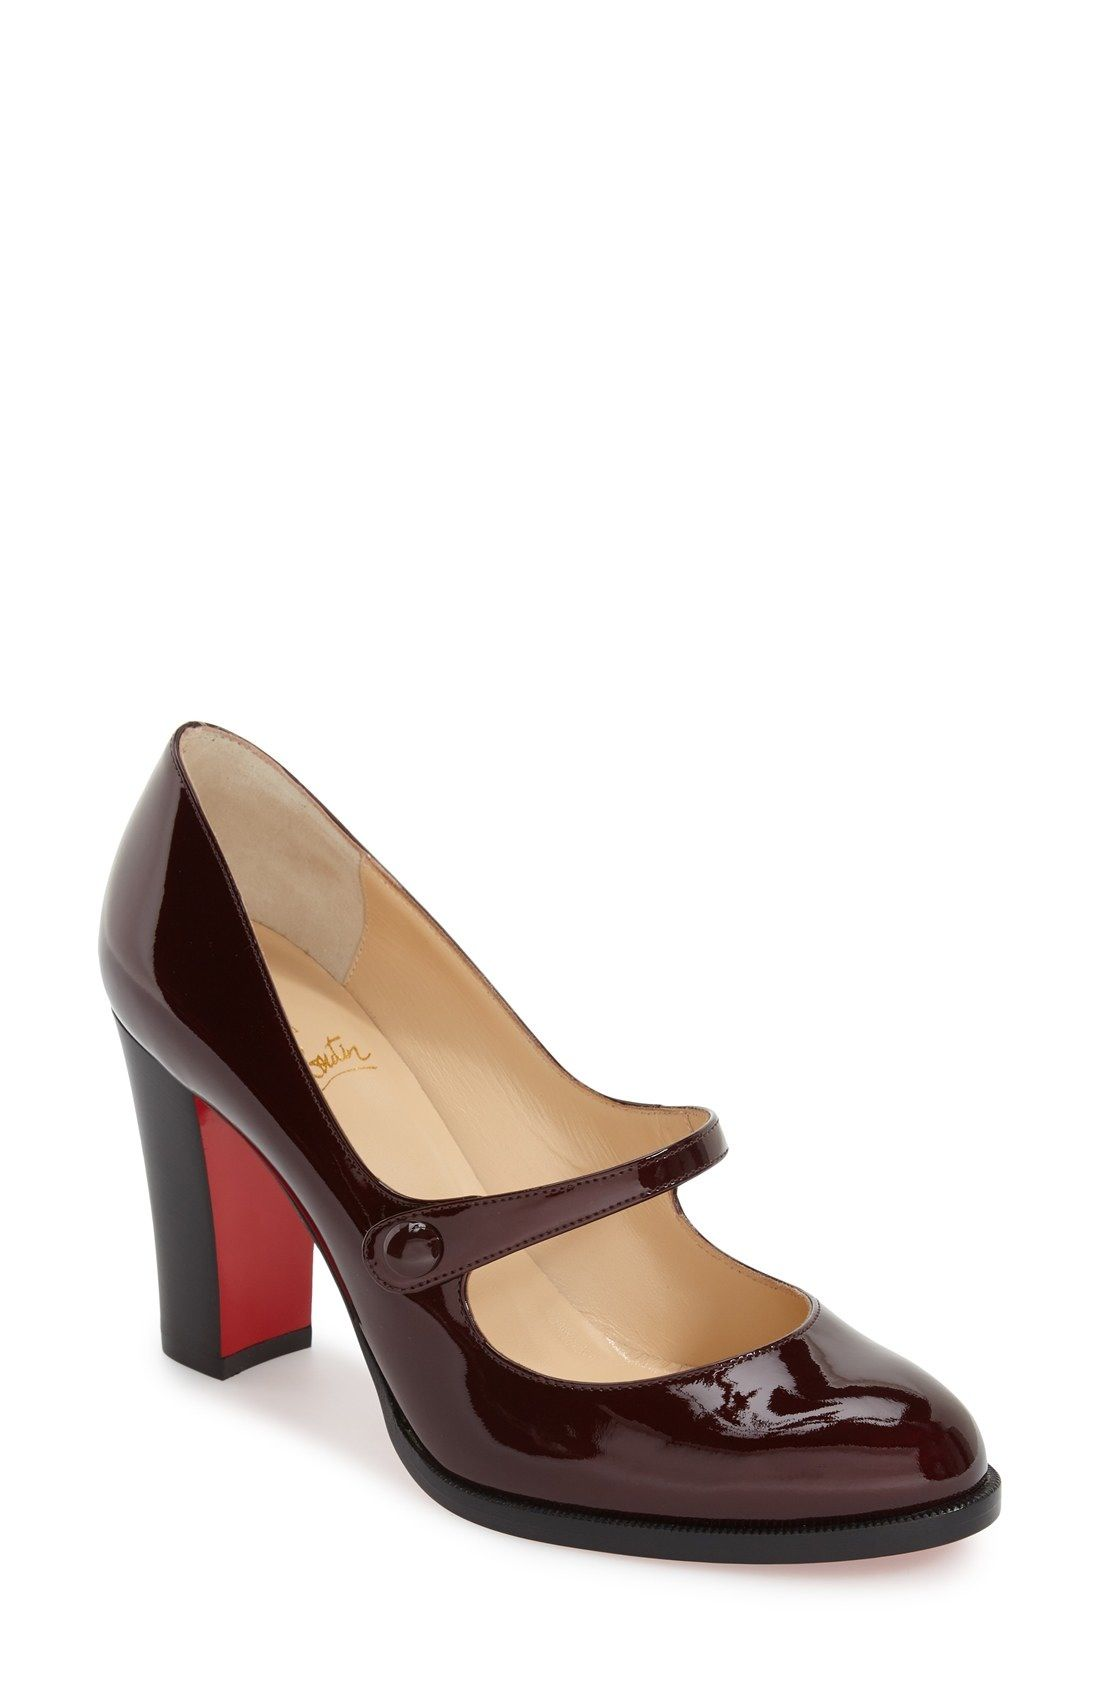 Louboutin Mary Jane